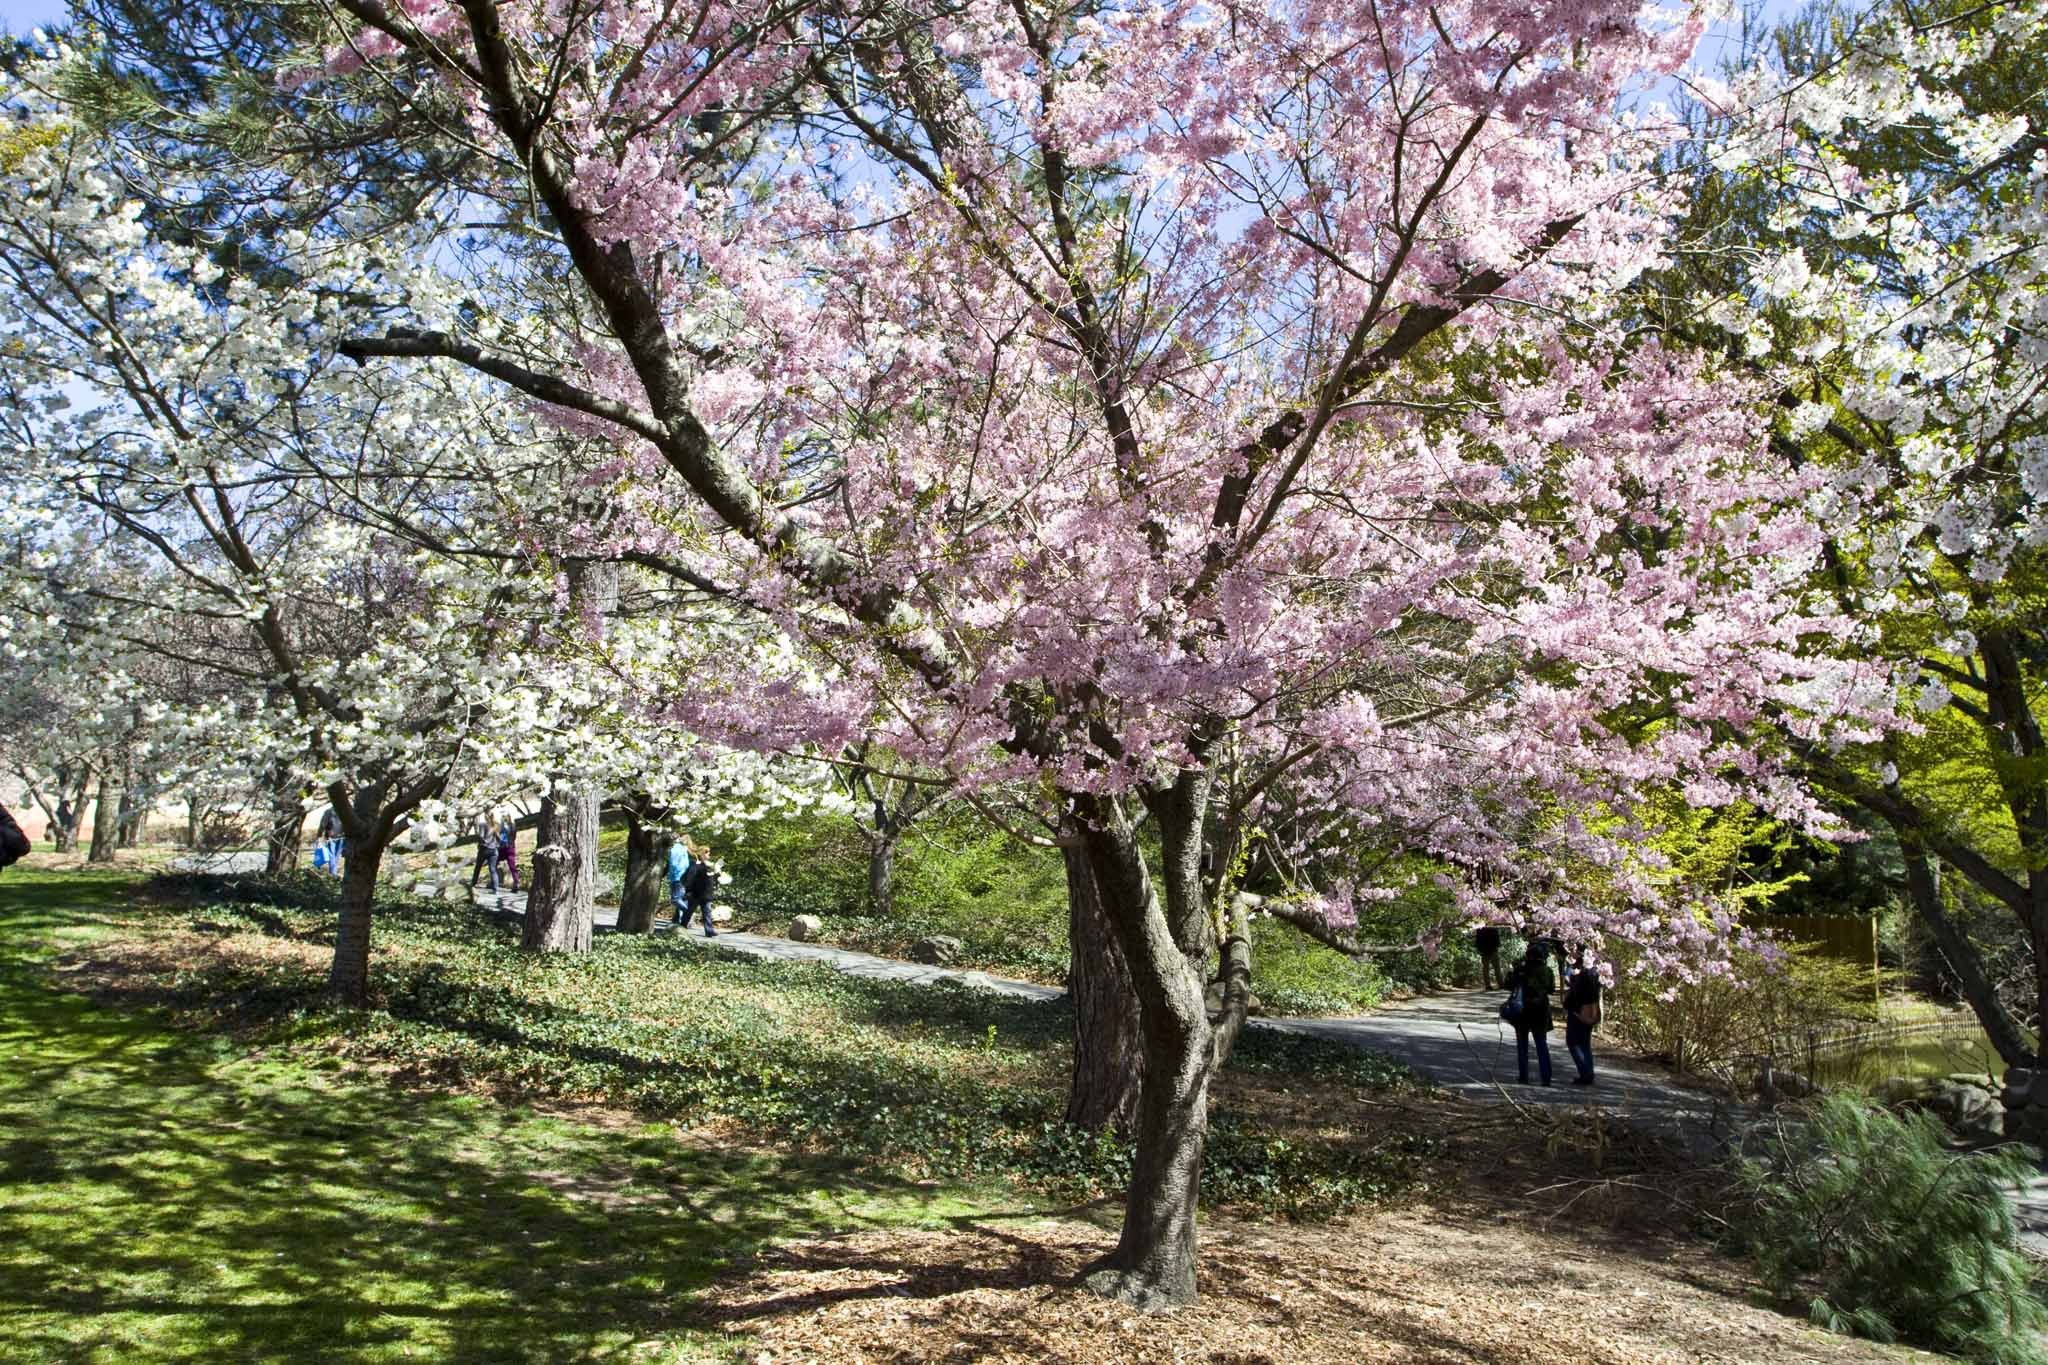 Find bliss at the Brooklyn Botanic Garden